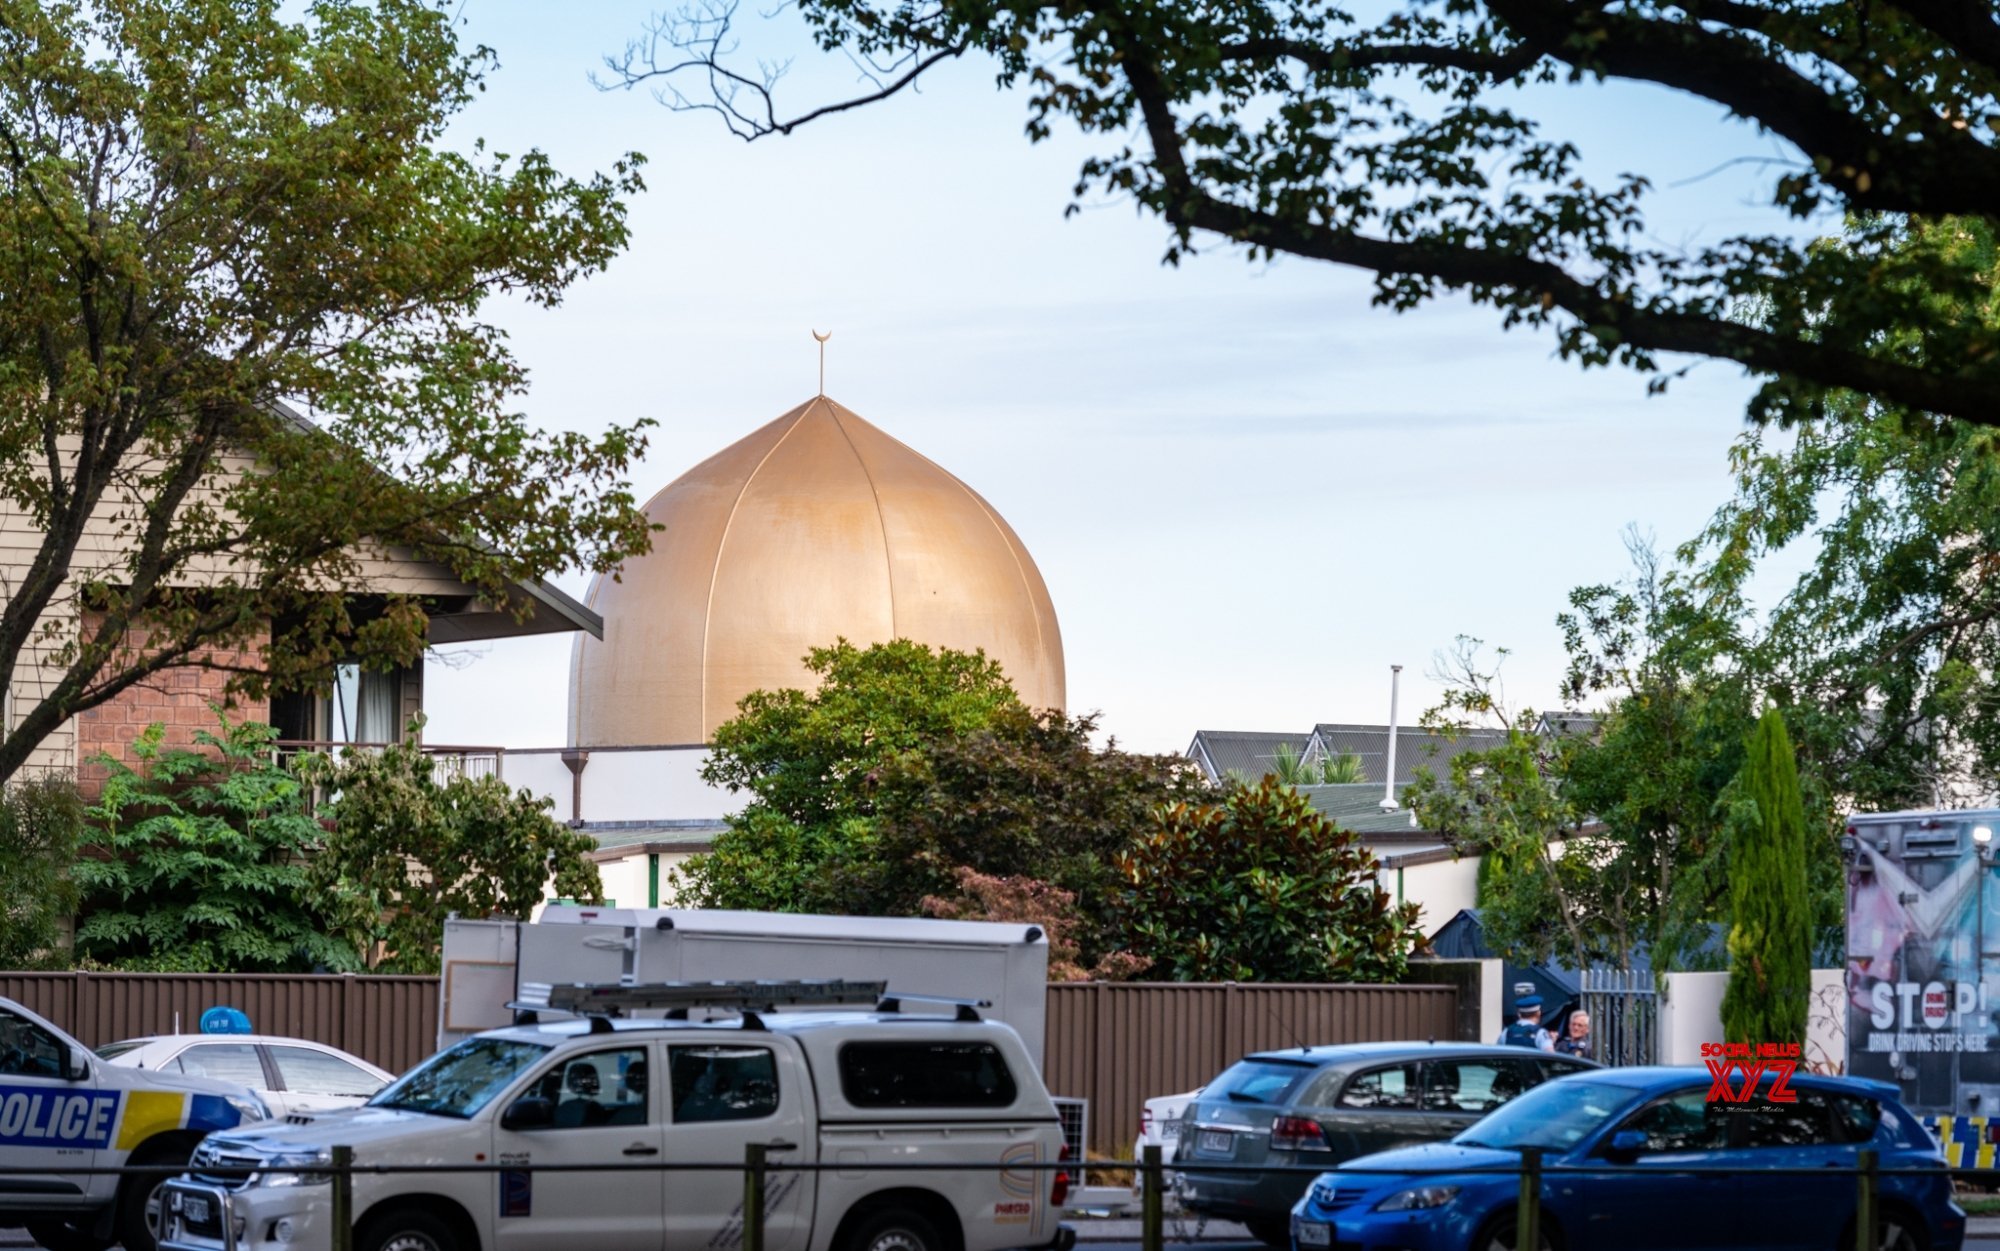 Christchurch gunman sent manifesto to PM before attack